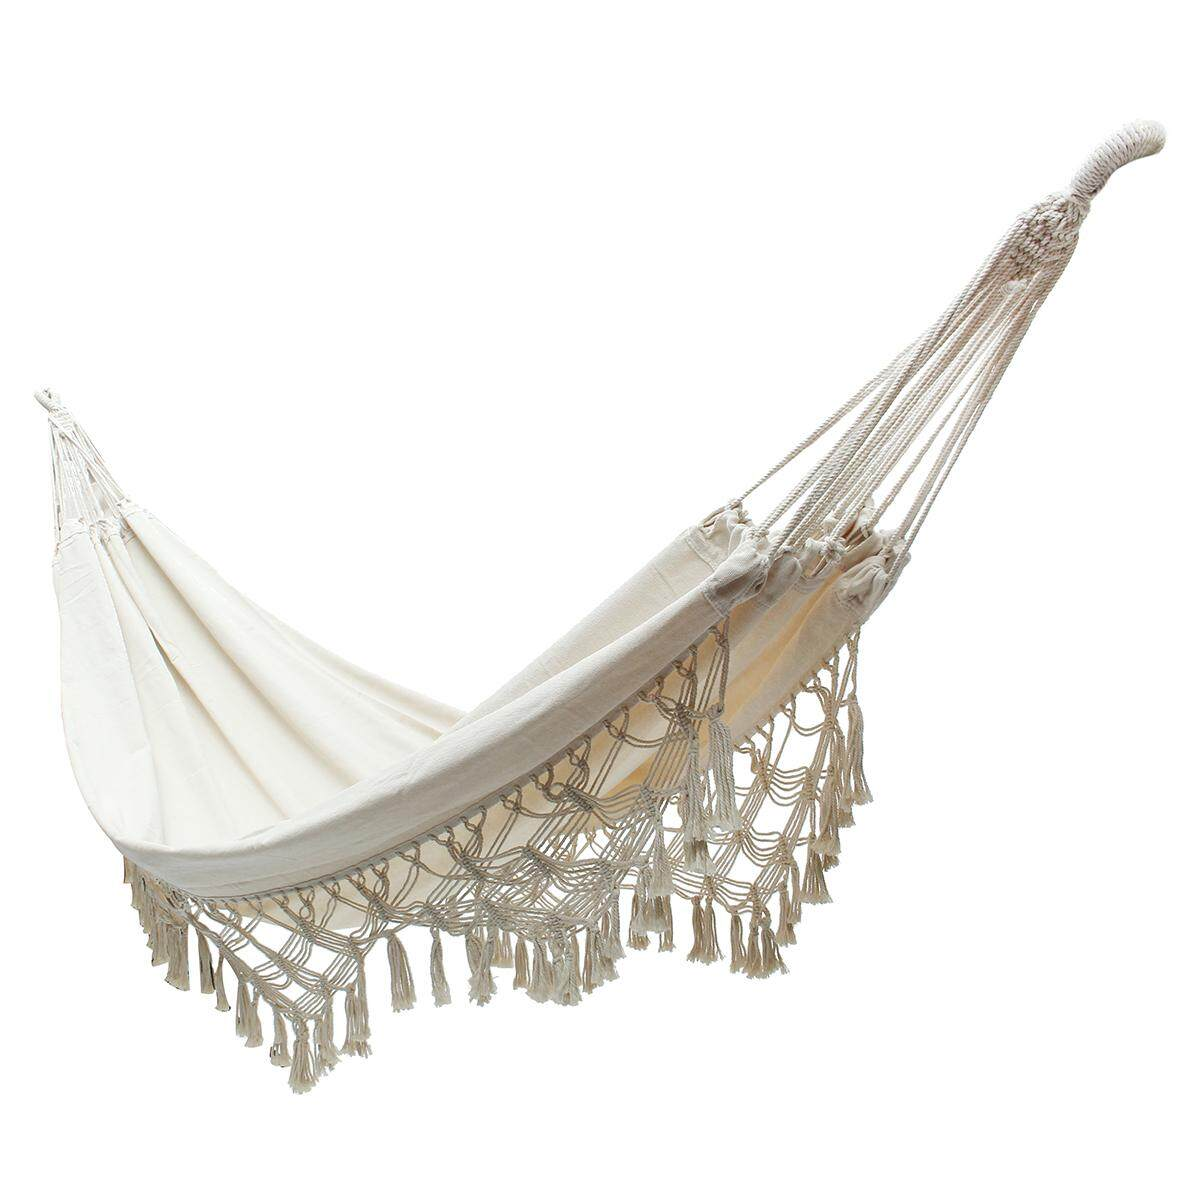 New Large Double Cotton Hanging Chair Hammock Fringe Swing Beach Yard Home 240cm By Glimmer.